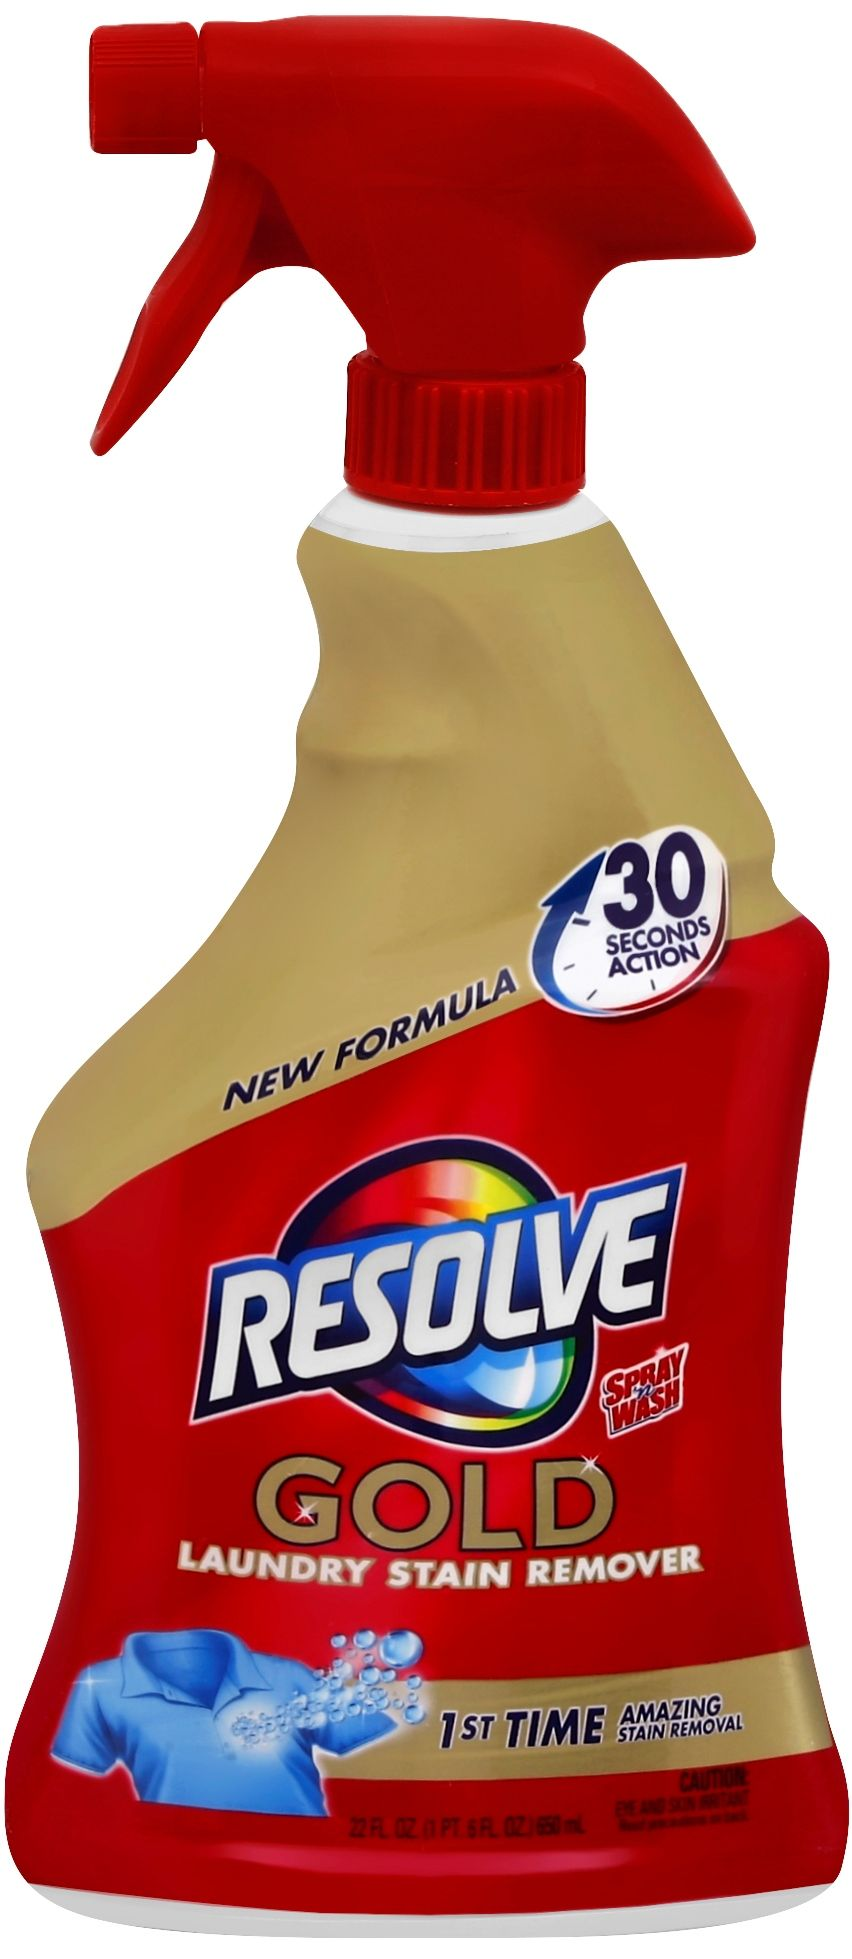 Kroger Resolve Gold Laundry Stain Remover Only 1 04 Bargains